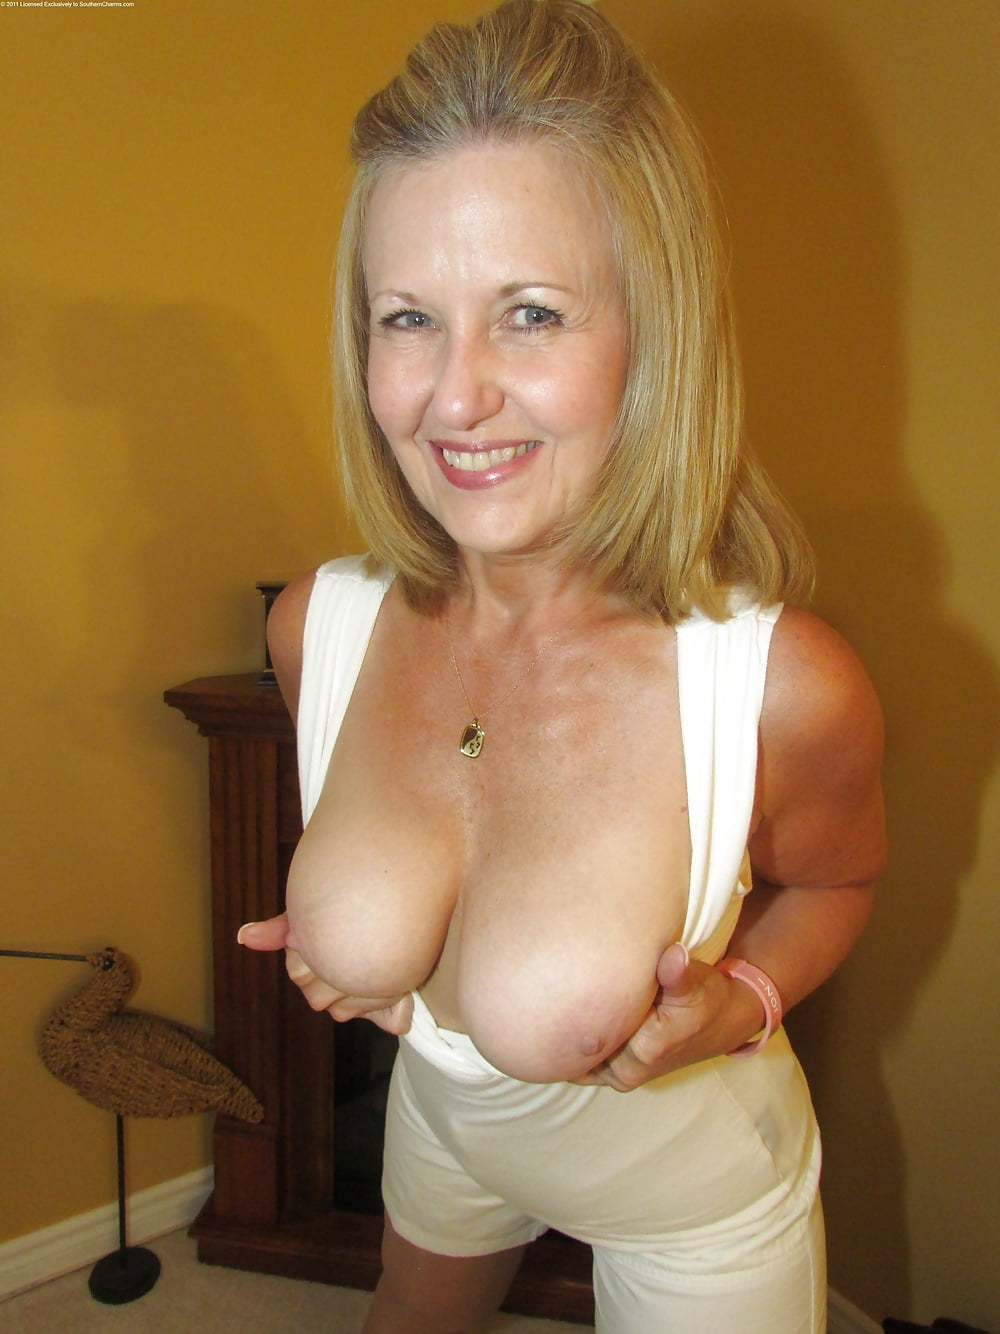 Milf And Moms And Aunts X4 32 Pics Xhamster